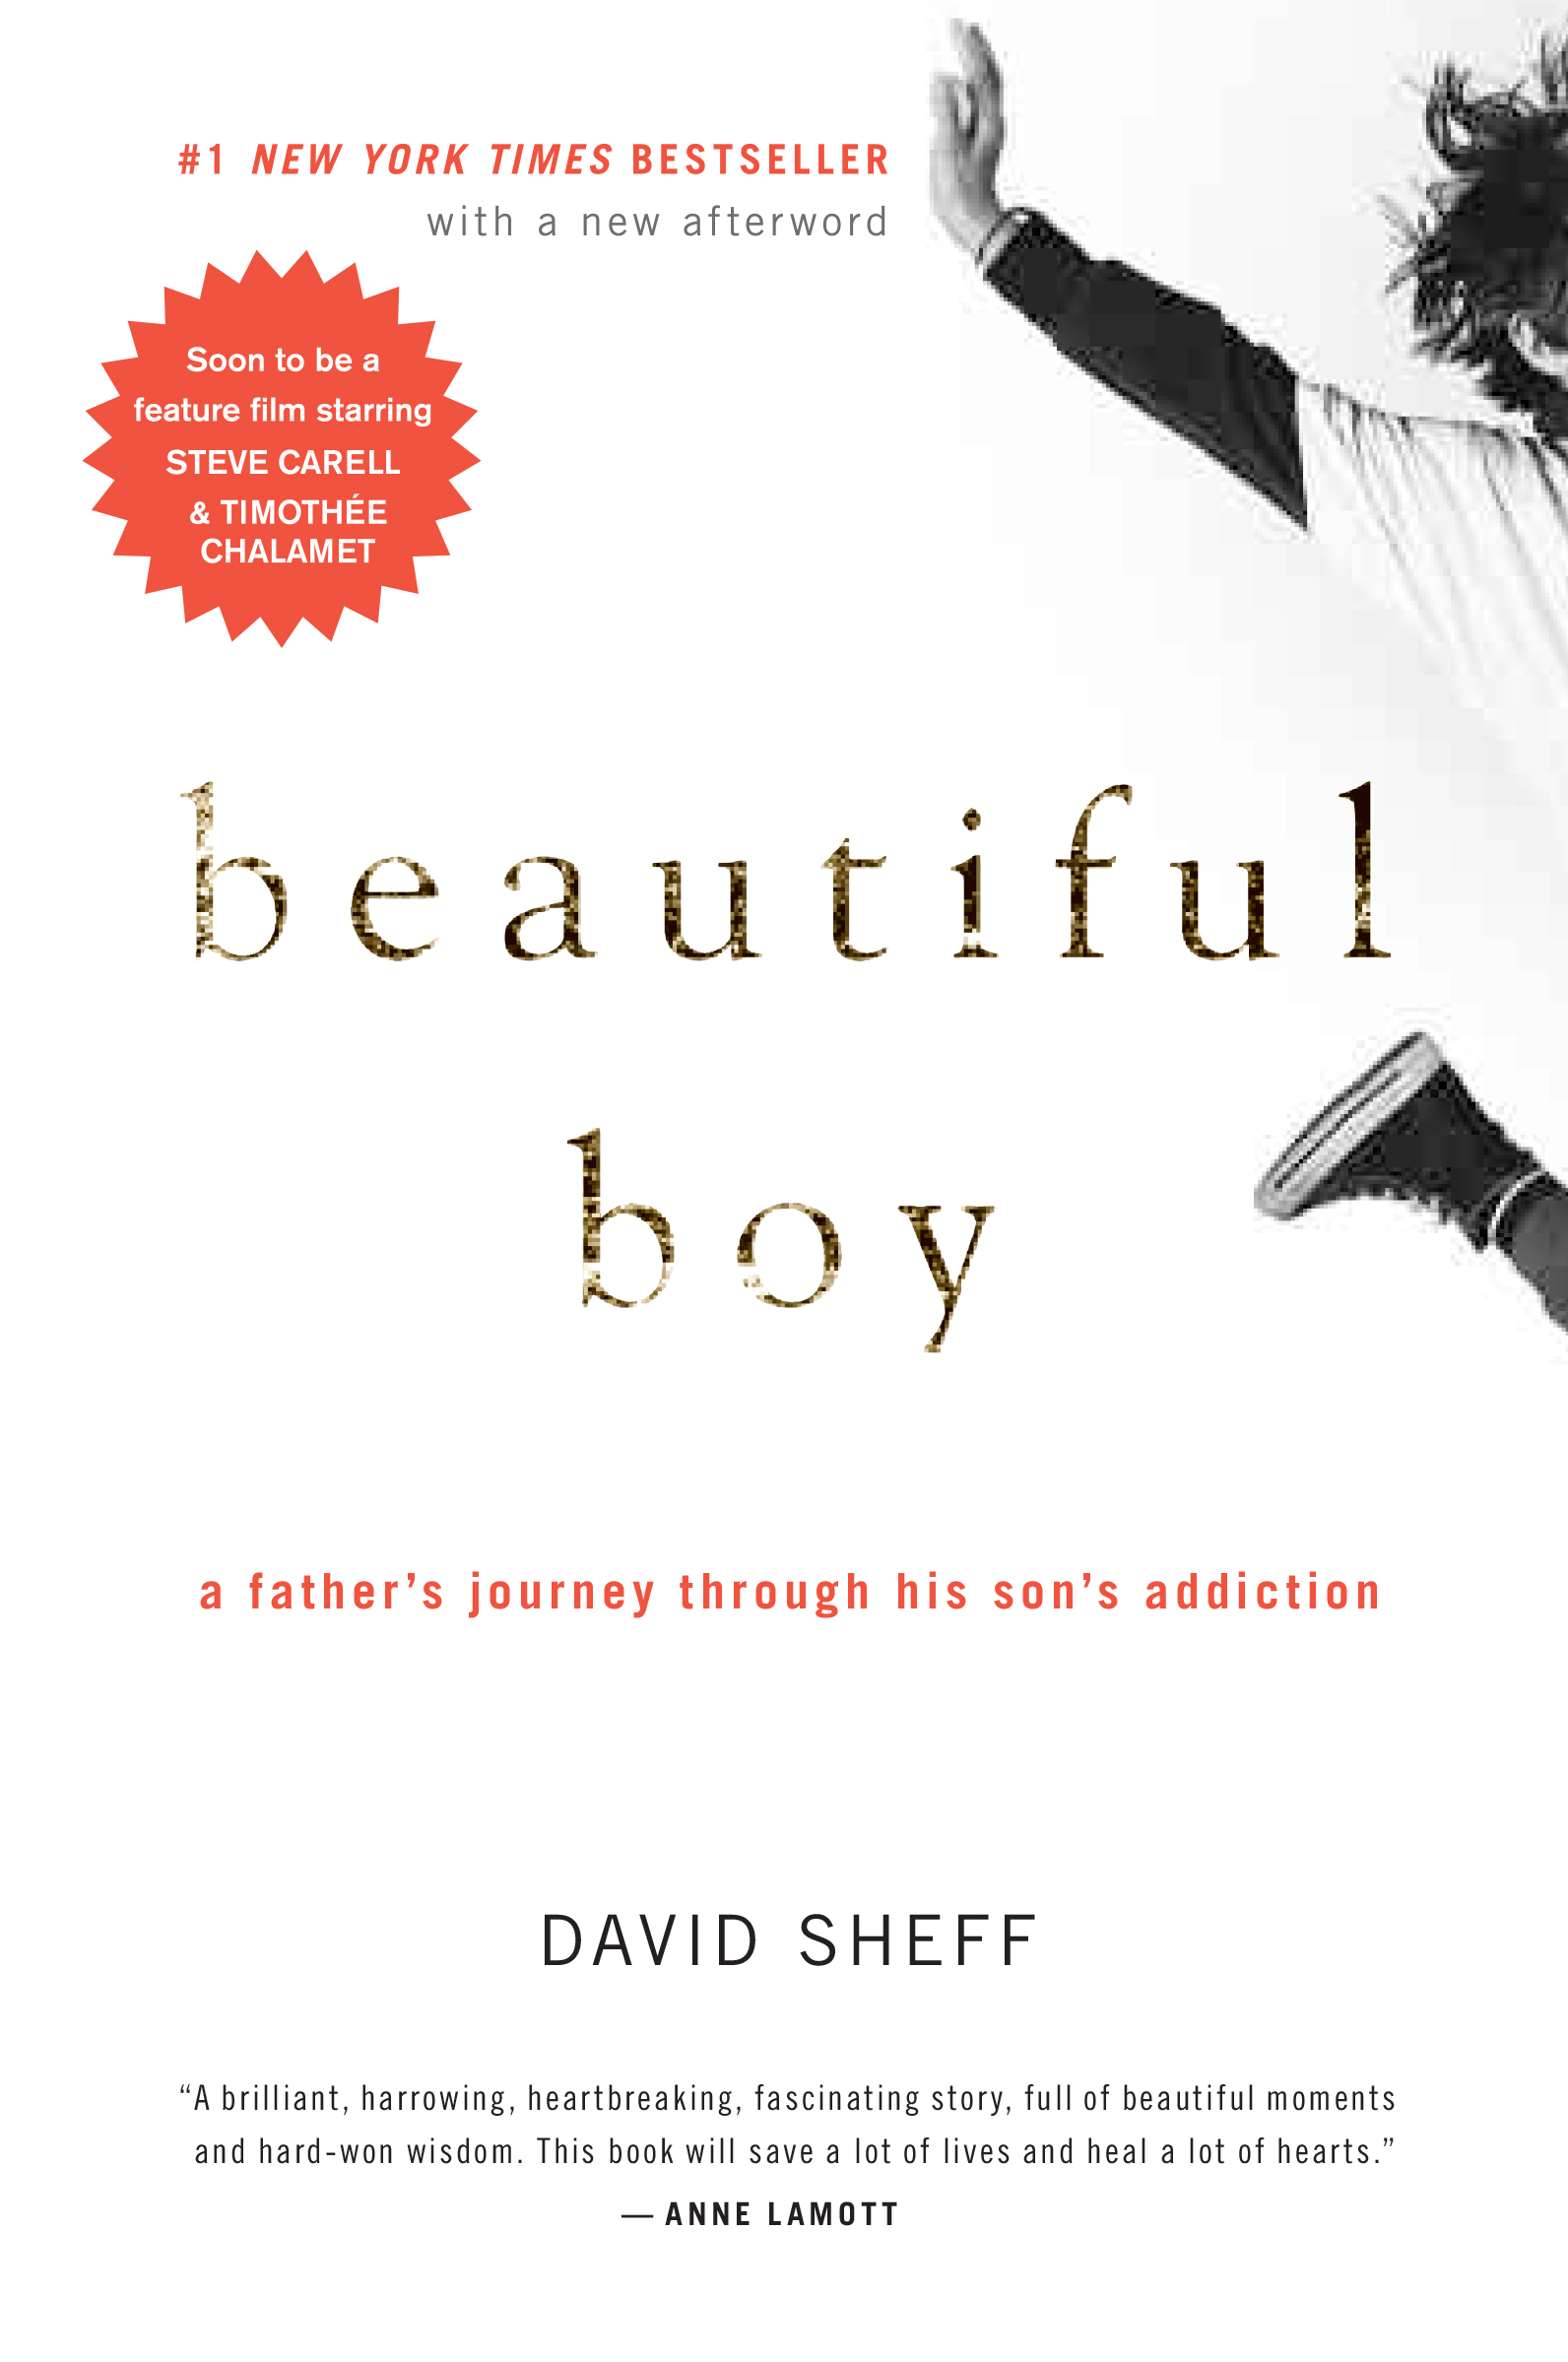 "beautiful boy - A FATHER'S JOURNEY THROUGH HIS SON'S ADDICTION""This is a brilliant, harrowing, heart-breaking, fascinating book, full of beautiful moments and hard-fought wisdom. It's going to save a lot of lives, and help heal a lot of hearts. I absolutely could not put it down: I read it straight through in two nights."" - Anne Lamott""My generation experimented with drugs and, now that we are parents, we're caught off guard. We never contemplated having to face what David Sheff has faced. He writes with candor, courage, and grace his family's harrowing – and sadly not atypical – story. Beautiful Boy is an important book. It is moving, timely, and sobering. It's also startlingly beautiful."" – Sir Richard Branson""Those of us who love an addict--or are addicts ourselves–will find BEAUTIFUL BOY a revelation. David Sheff knows all too well what must be endured with faith, and his extraordinary book describes it better than anything else I've read. While painfully candid, BEAUTIFUL BOY is equally optimistic and powerful."" – Martin Sheen"